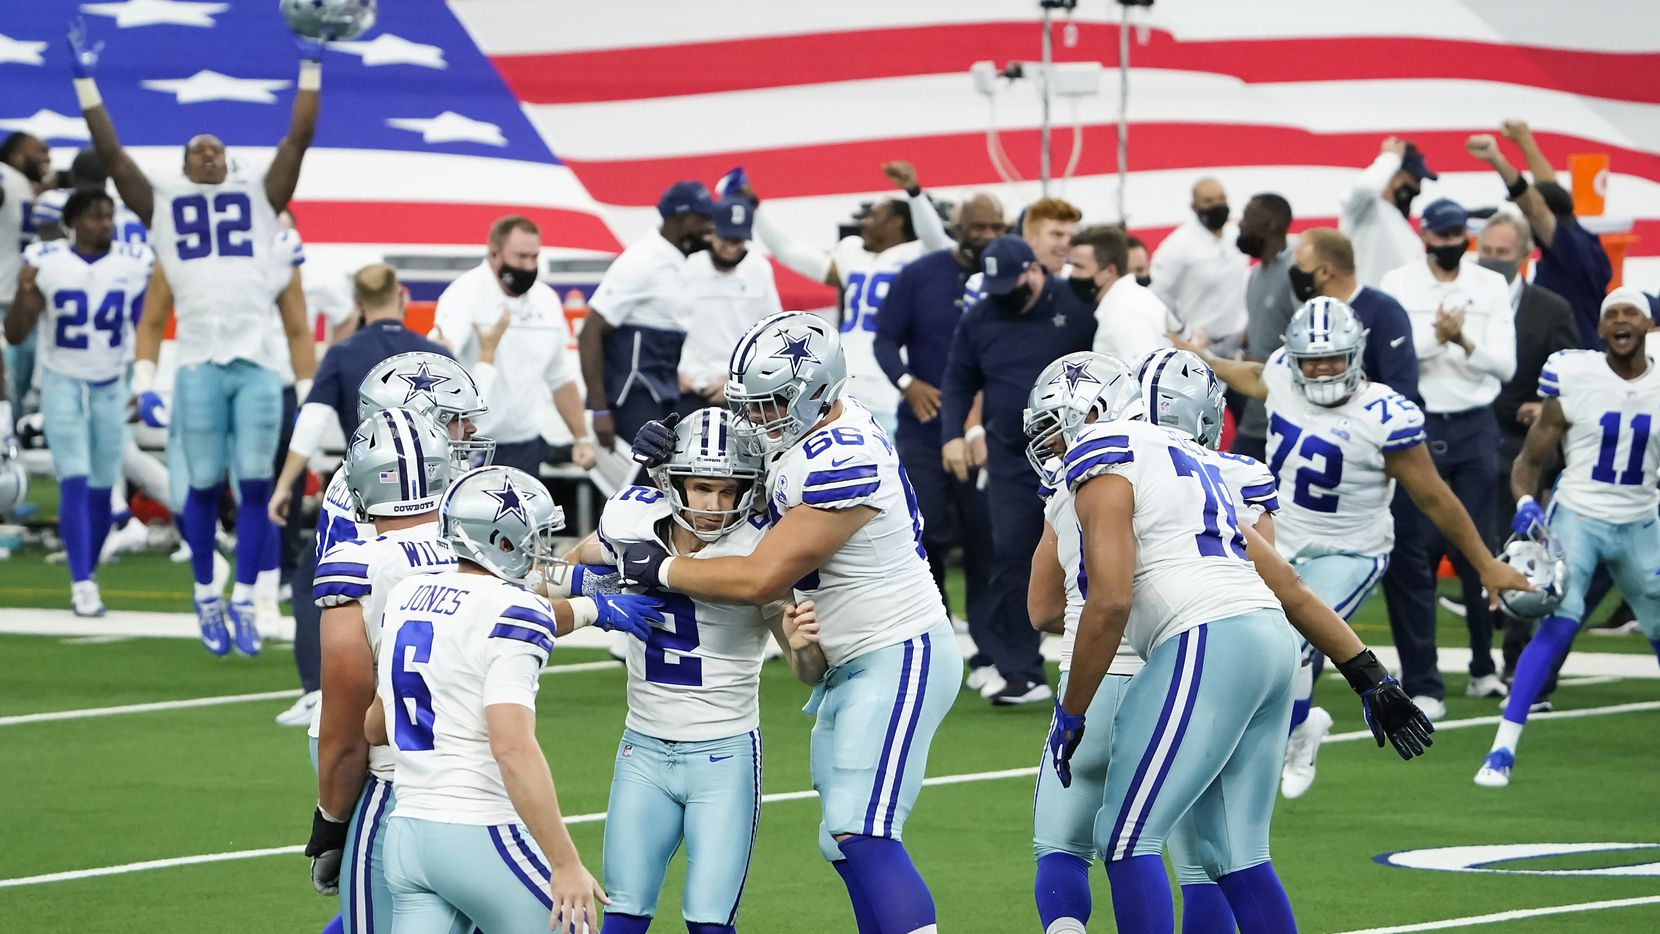 Dallas Cowboys kicker Greg Zuerlein (2) celebrates with Connor McGovern (66) after kicking a 46-yard game-winning field goal on the final play of a 40-39 victory over the against the Atlanta Falcons in an NFL football game at AT&T Stadium on Sunday, Sept. 20, 2020, in Arlington.